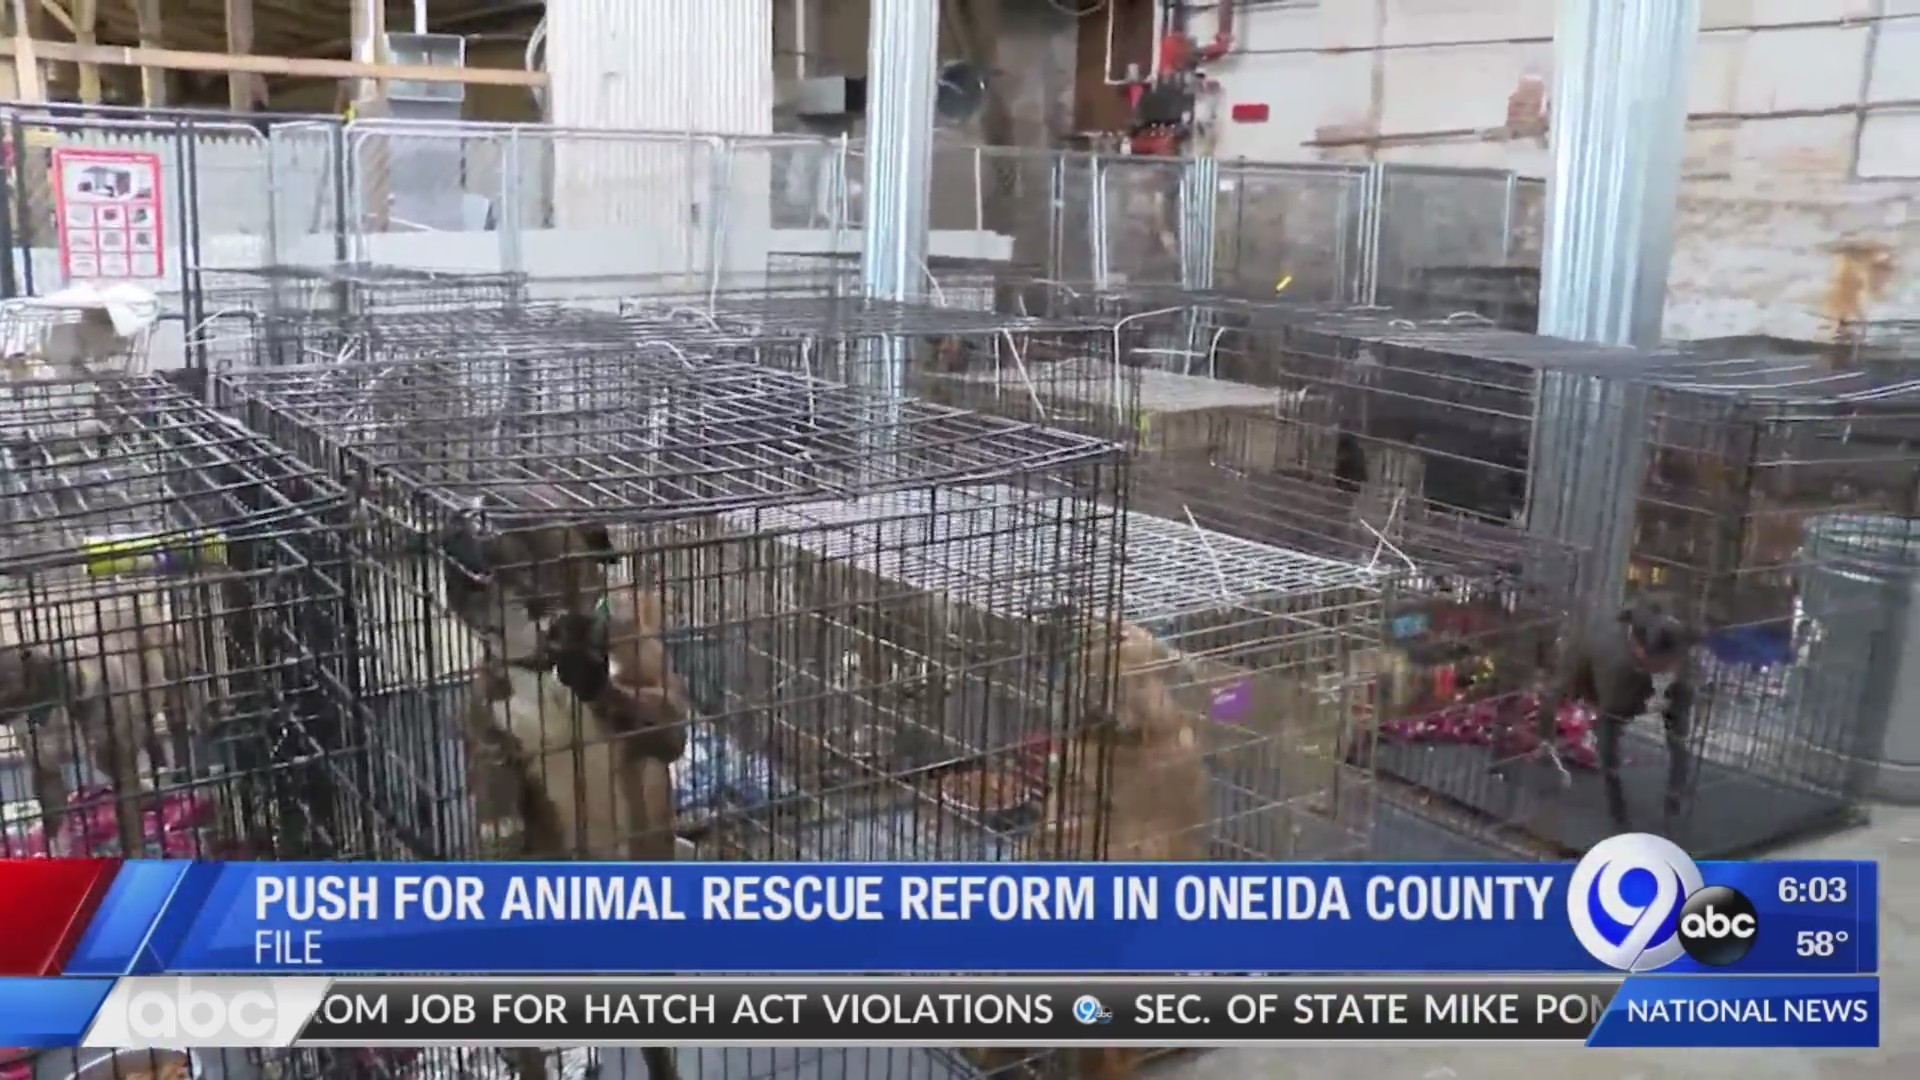 Investigation finds no violations at Road to a Home dog rescue